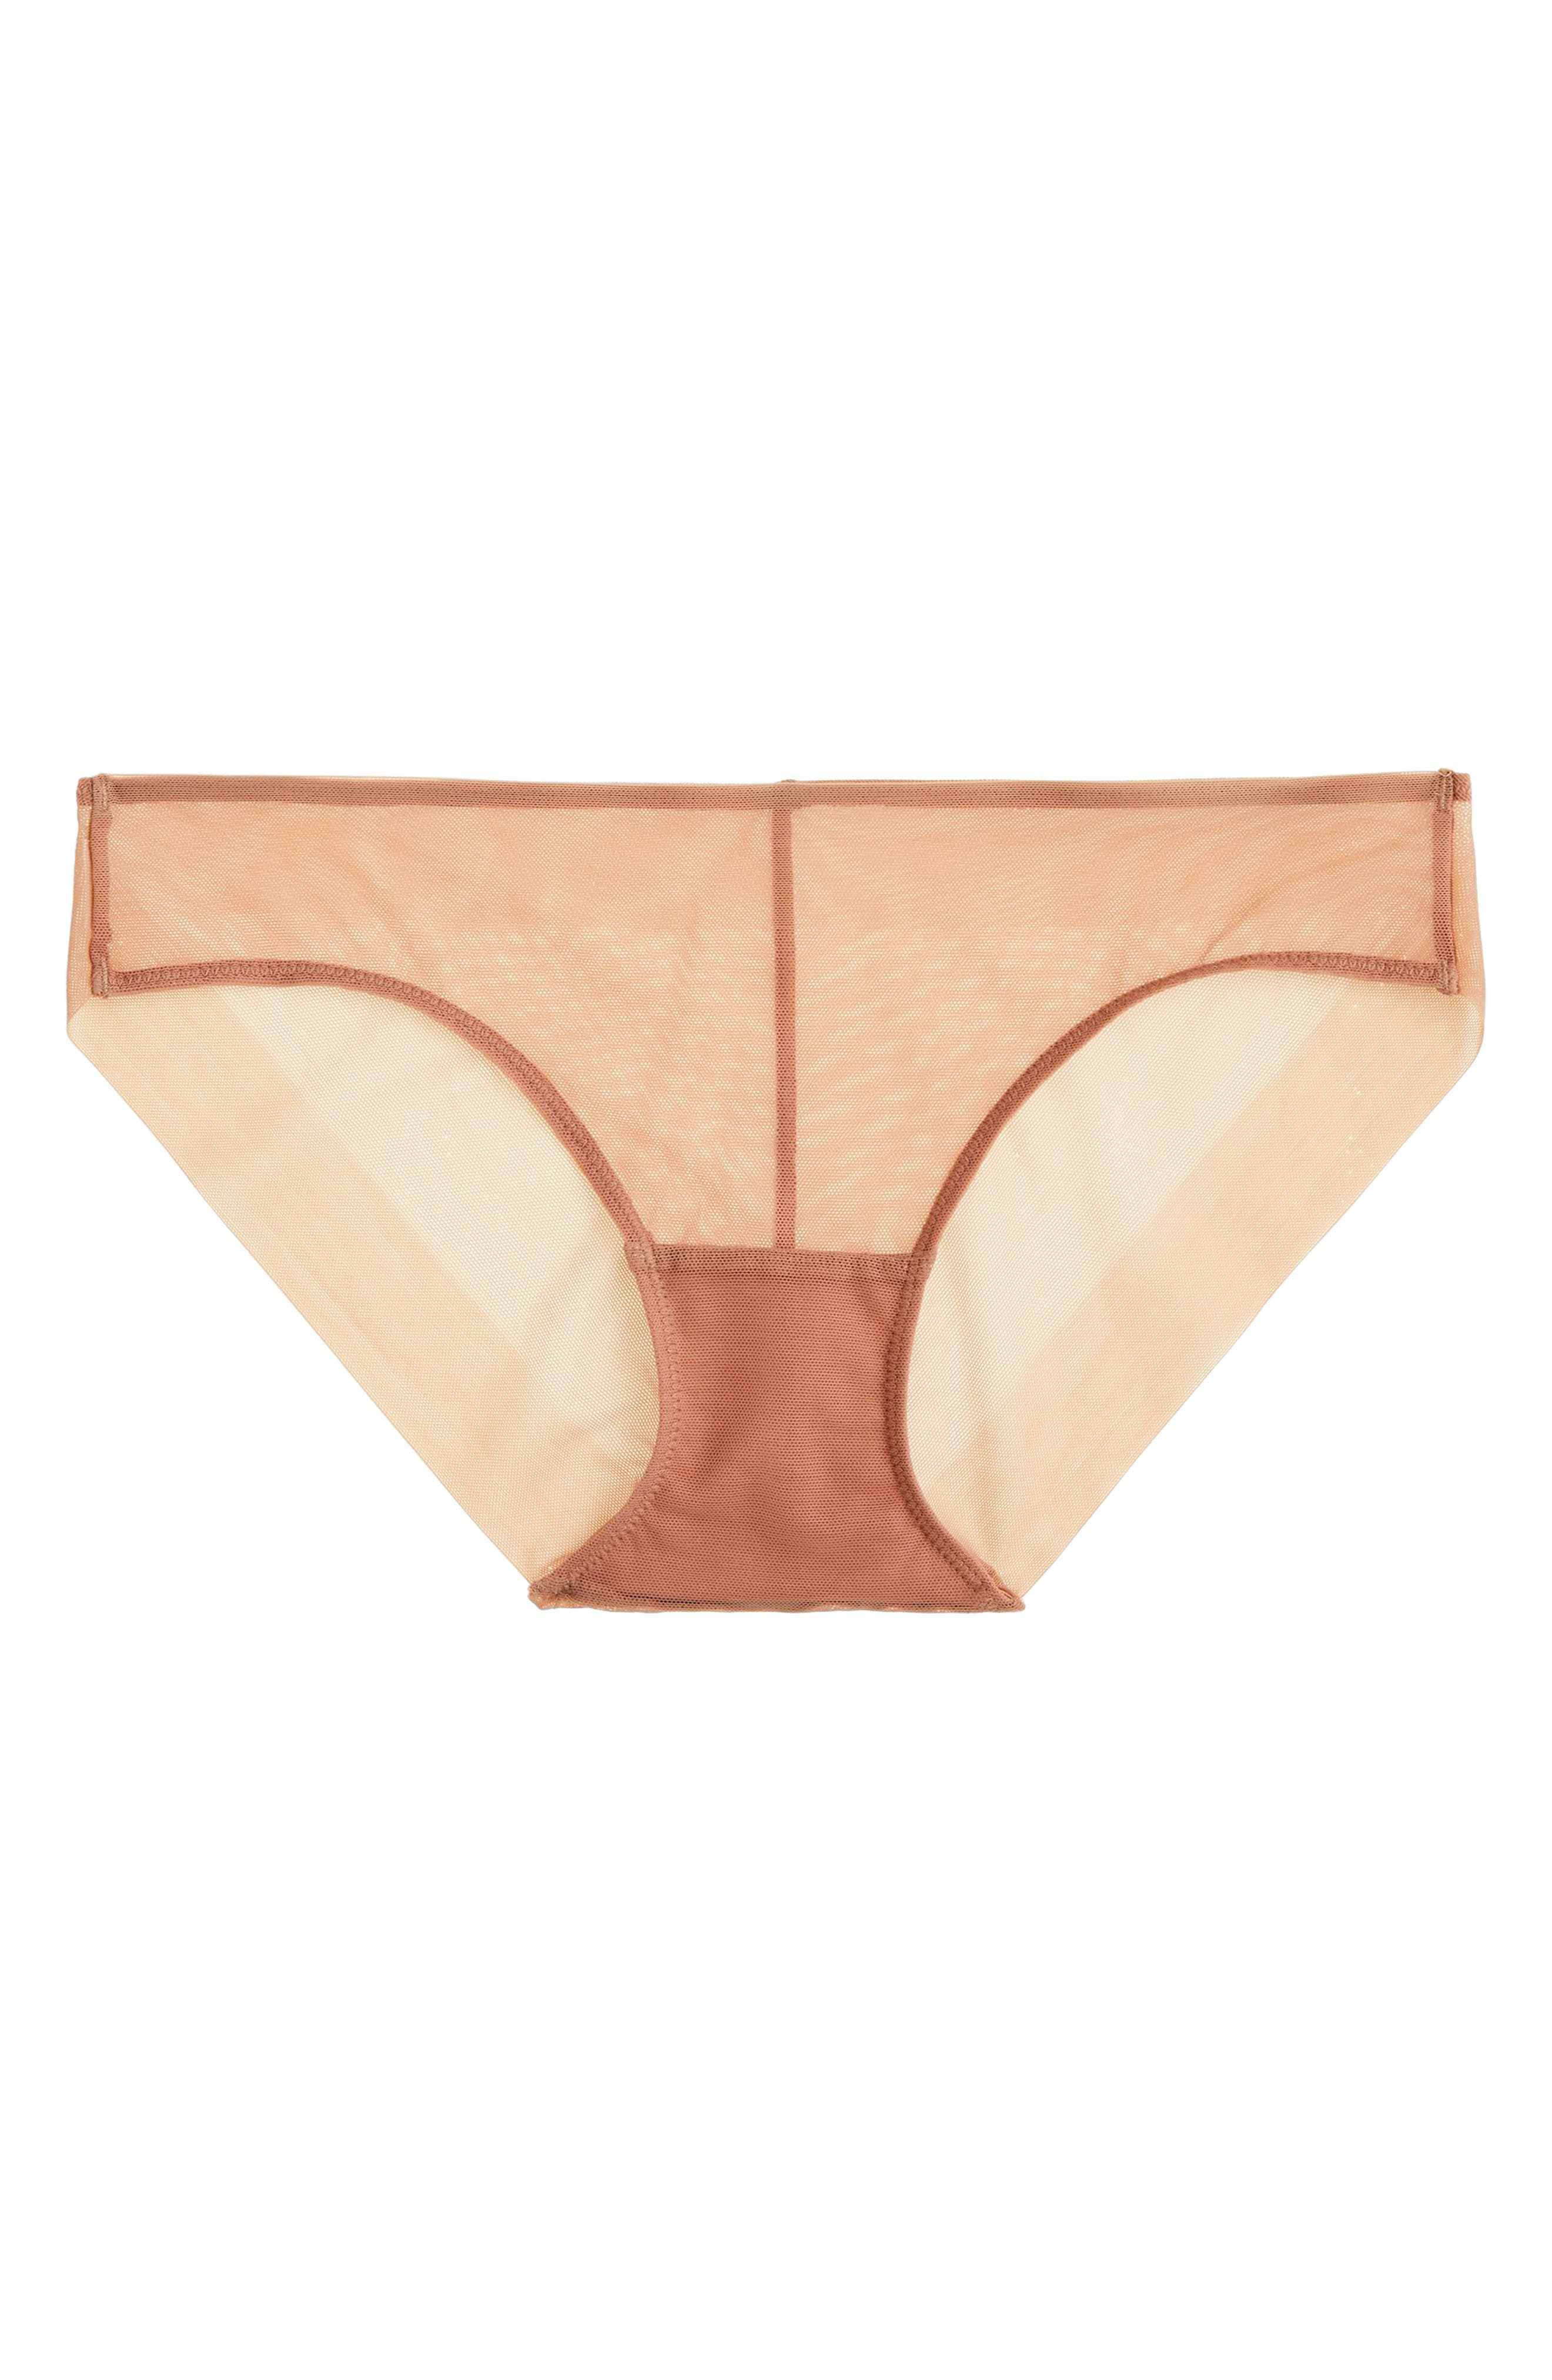 Second Skin Bikini,                             Main thumbnail 1, color,                             Pale Sepia